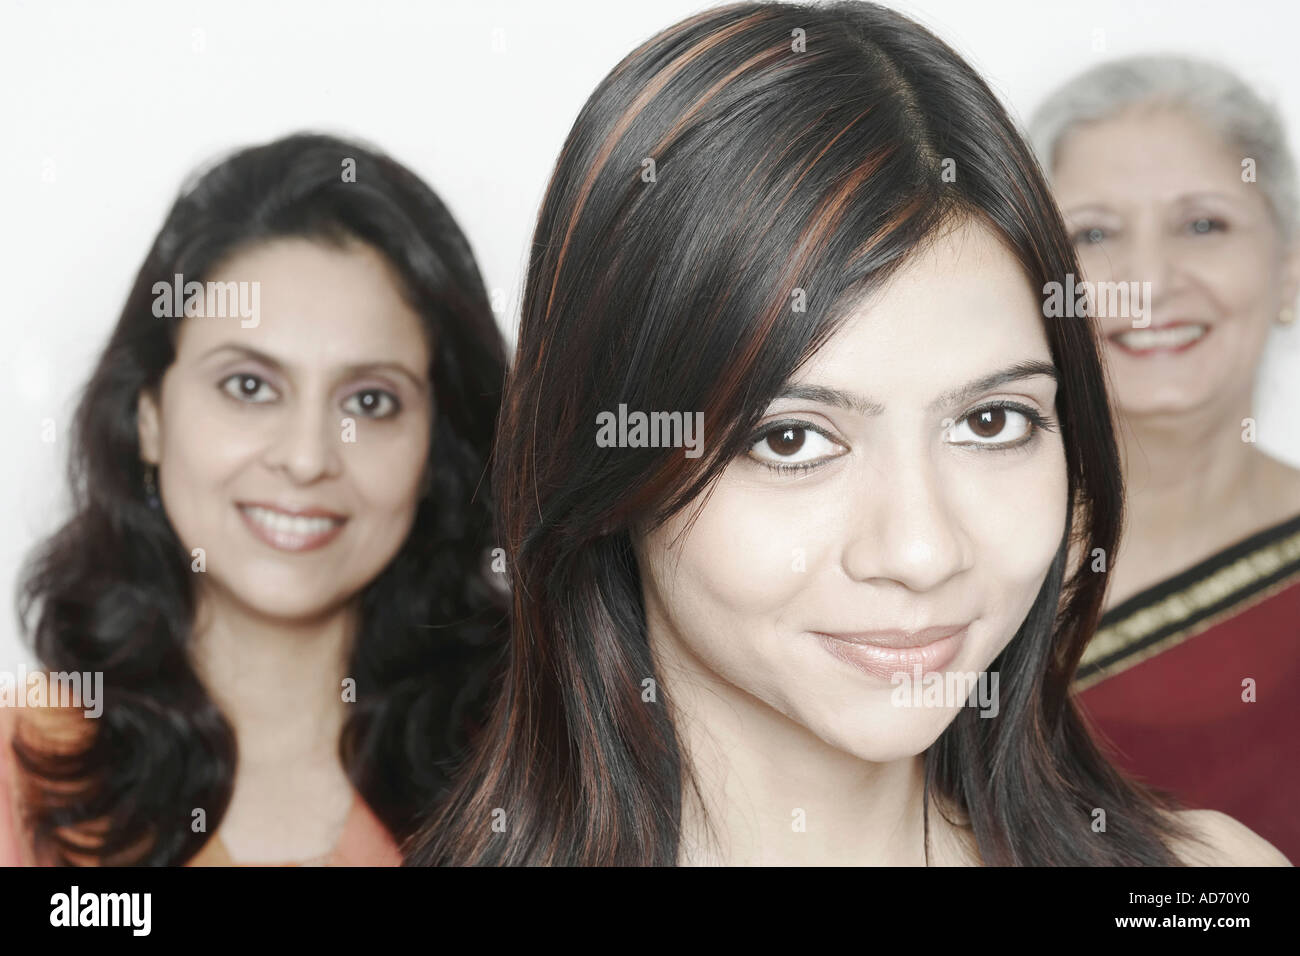 Portrait of a young woman smiling with two women standing behind her - Stock Image